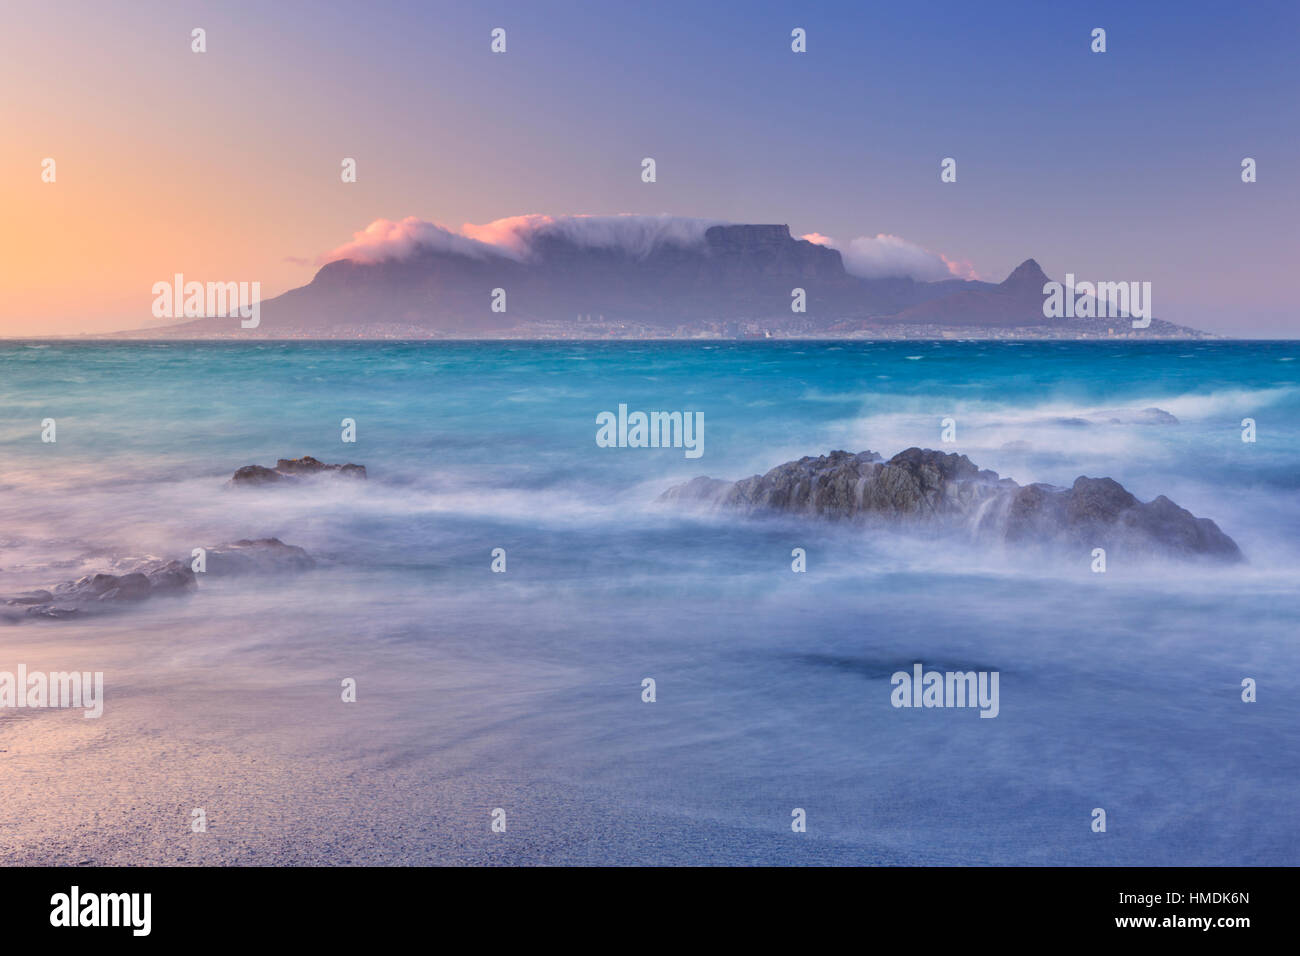 Sunrise over the Table Mountain and Cape Town from the beach of Bloubergstrand. Stock Photo